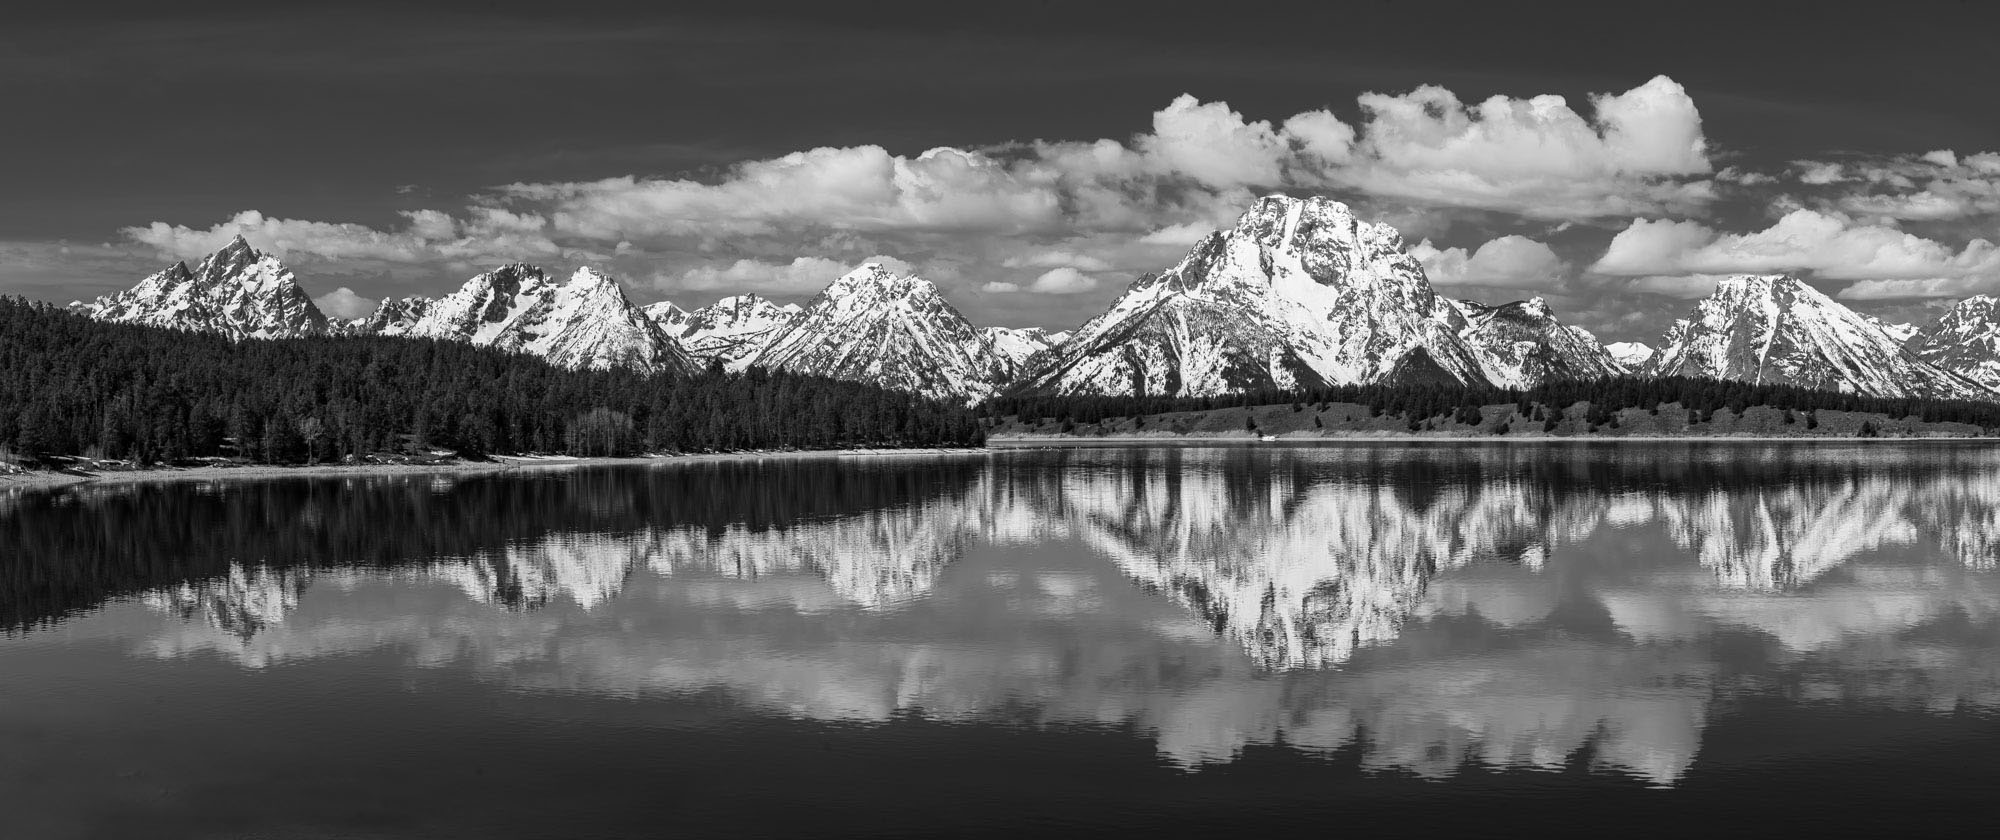 Winter Landscapes In Grand Teton National Park Best Of The